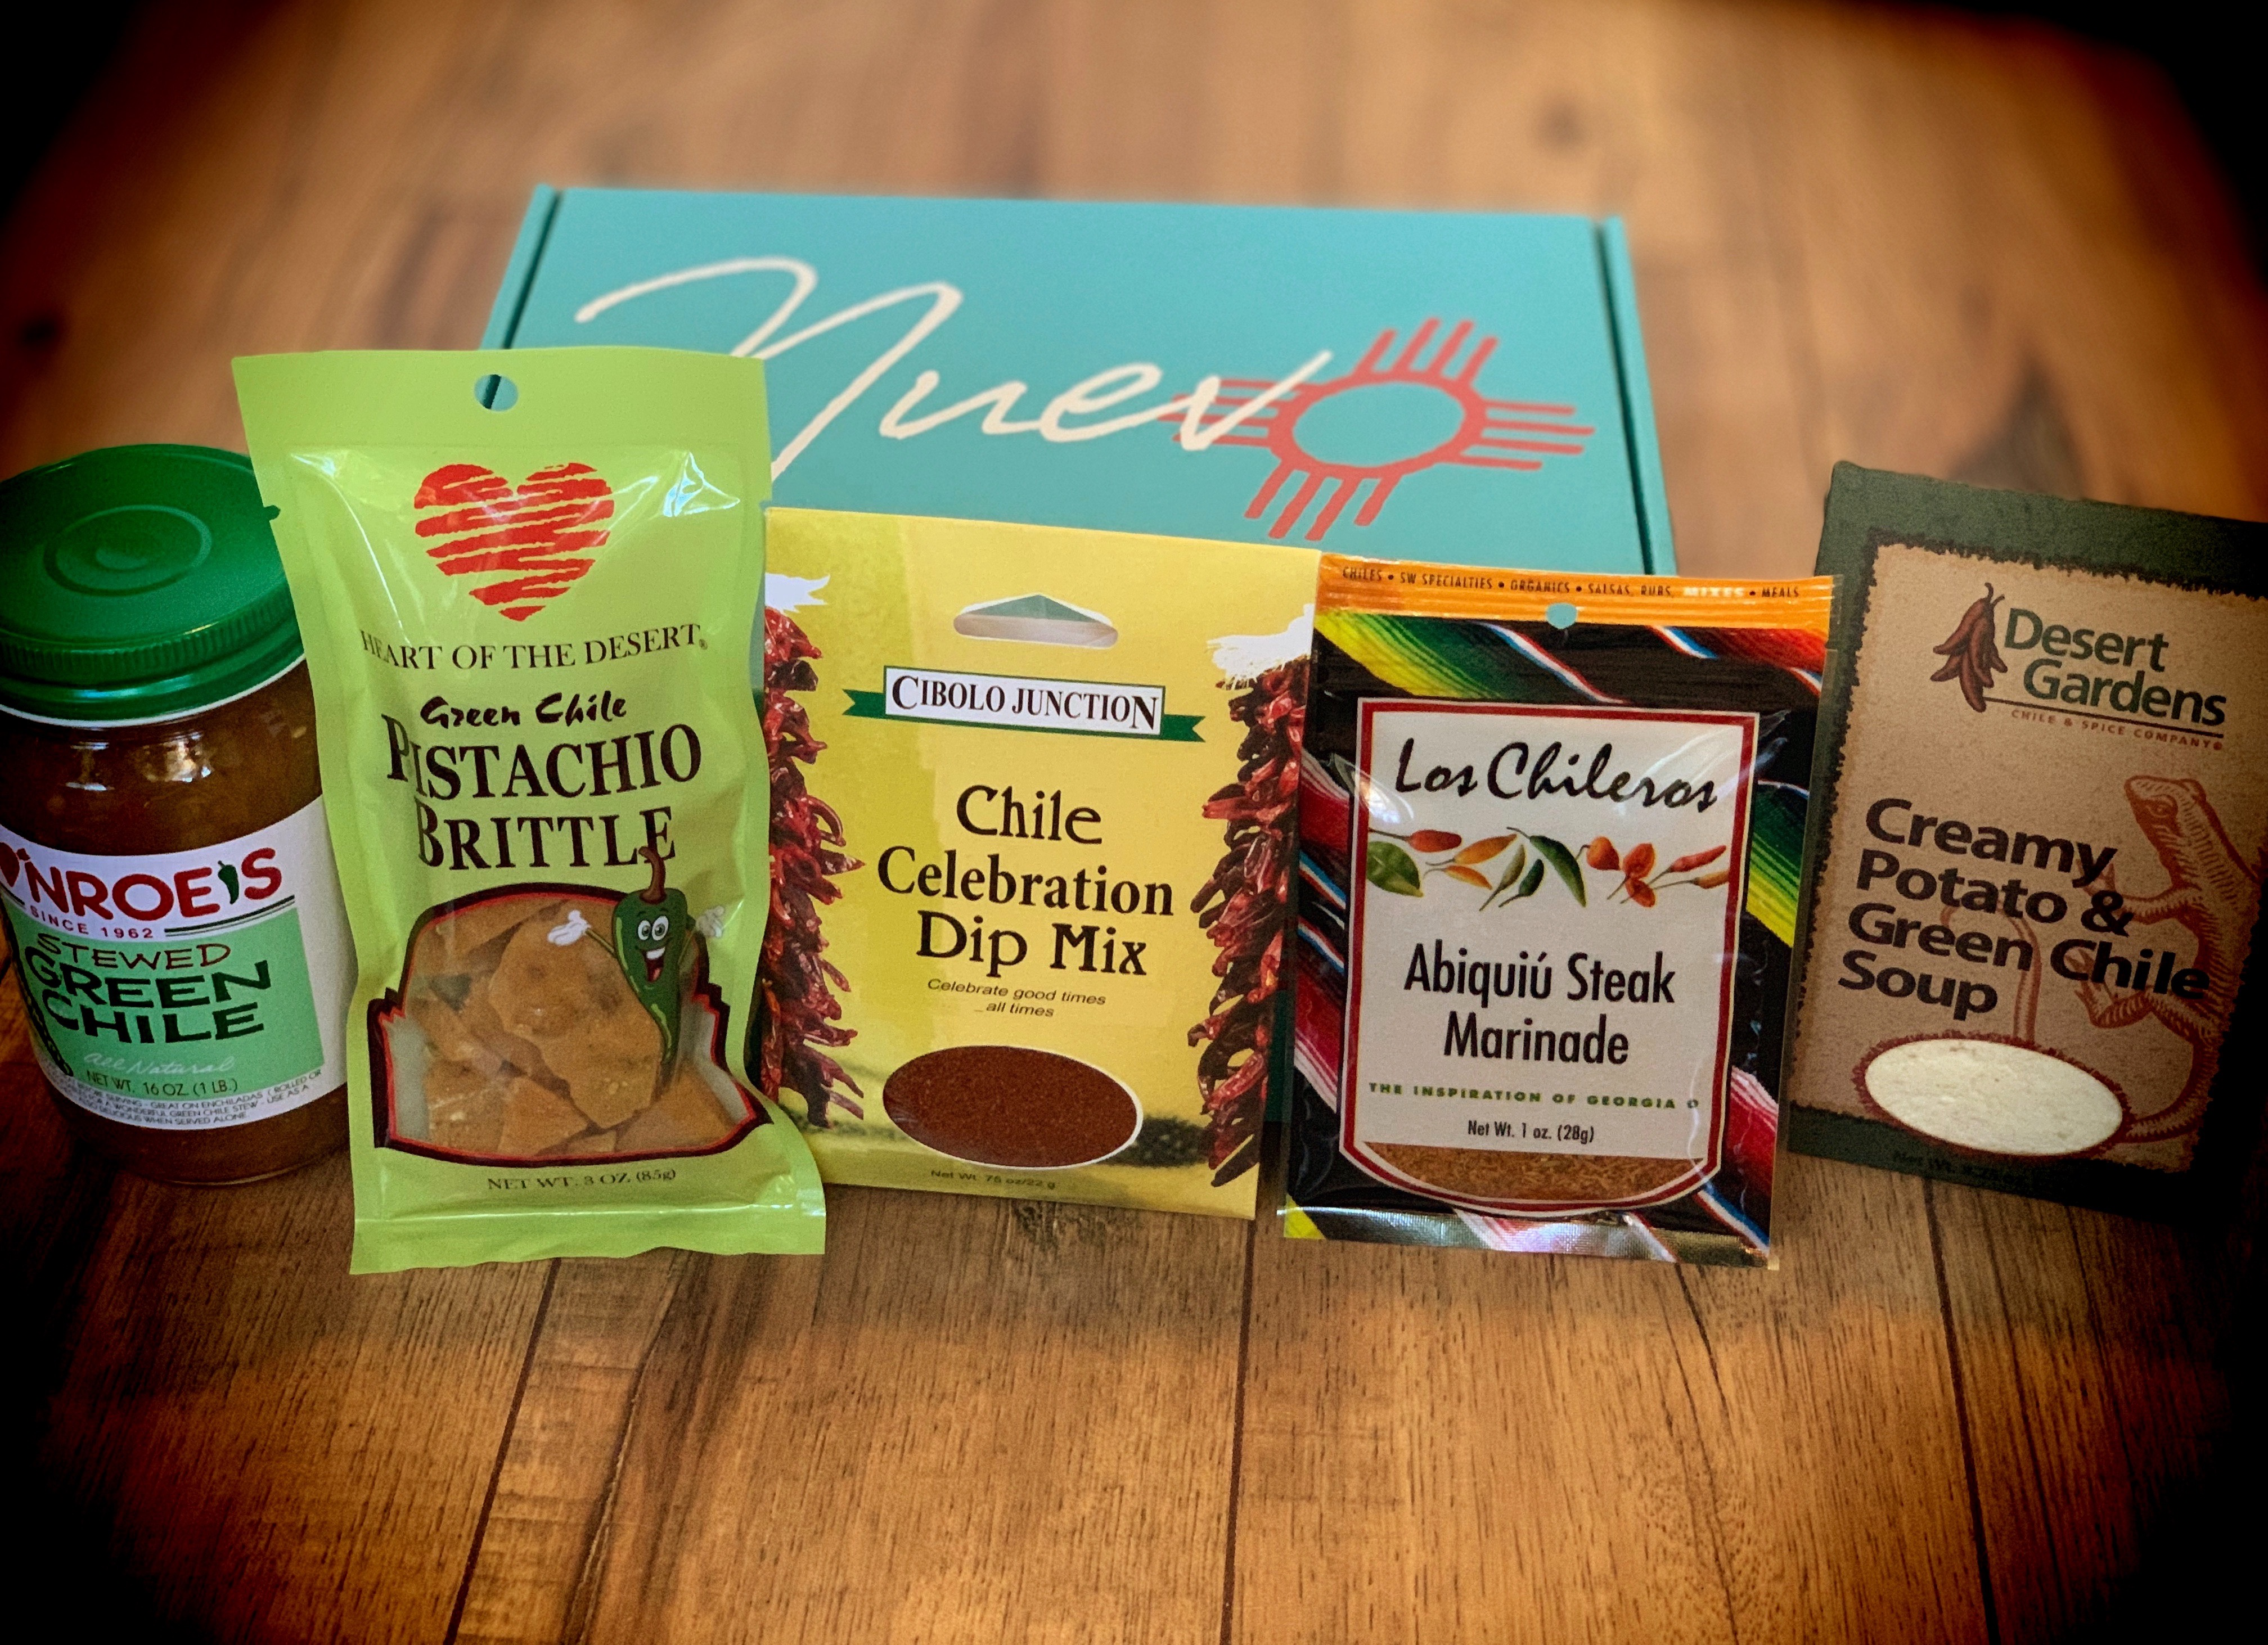 new mexico snack and food subscription box with heart of the desert pistachio brittle and more